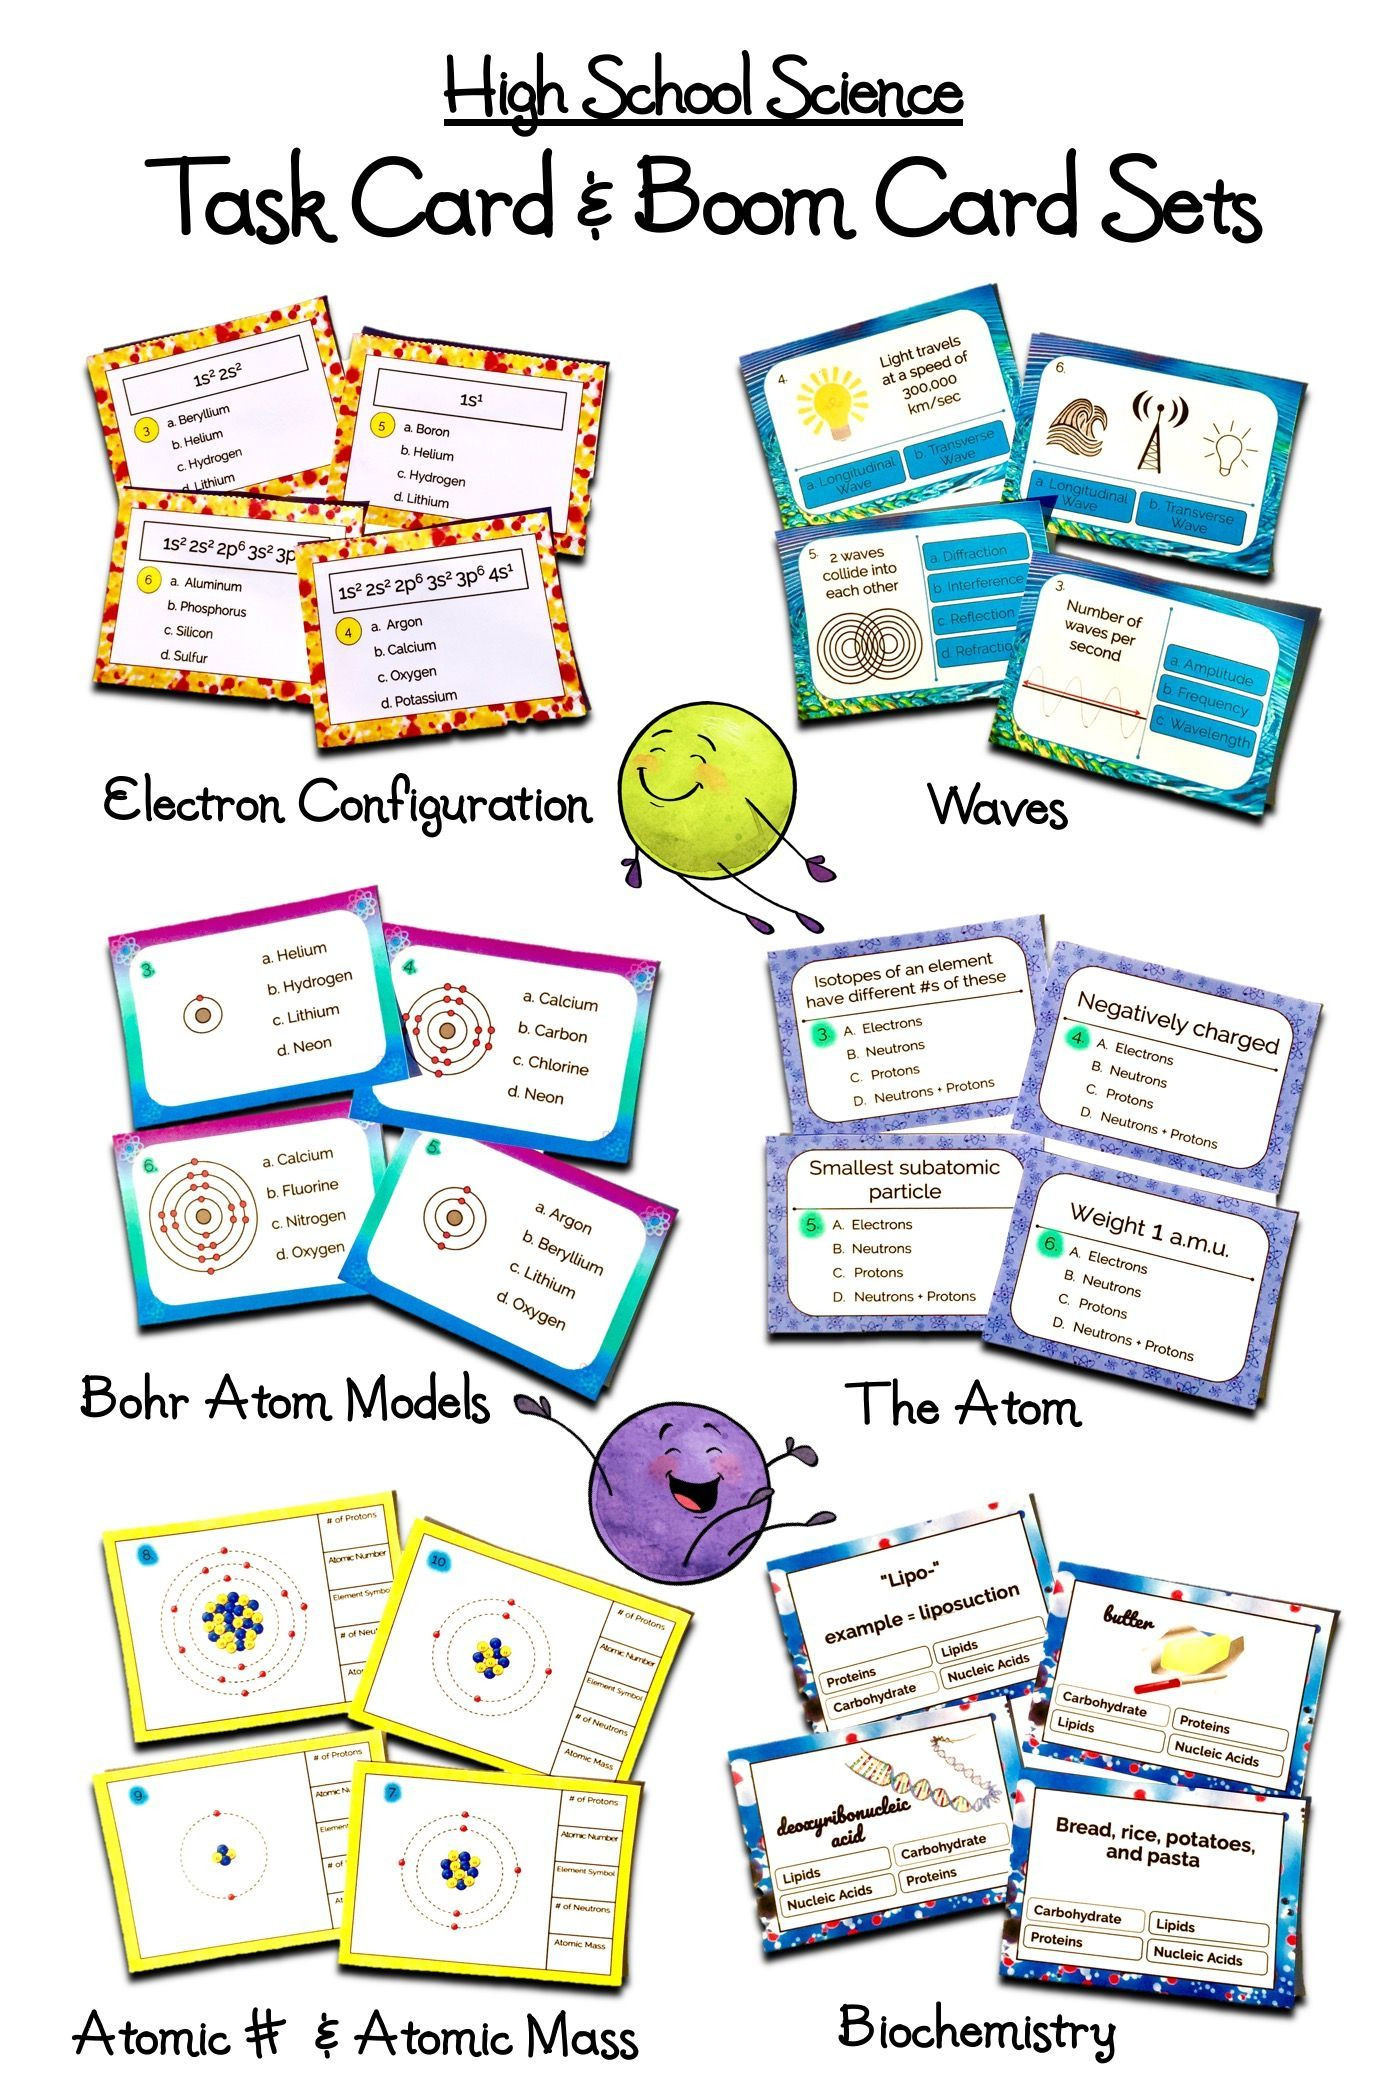 9th Grade Physical Science Worksheets High School Science Task Card & Line Boom Card Activity